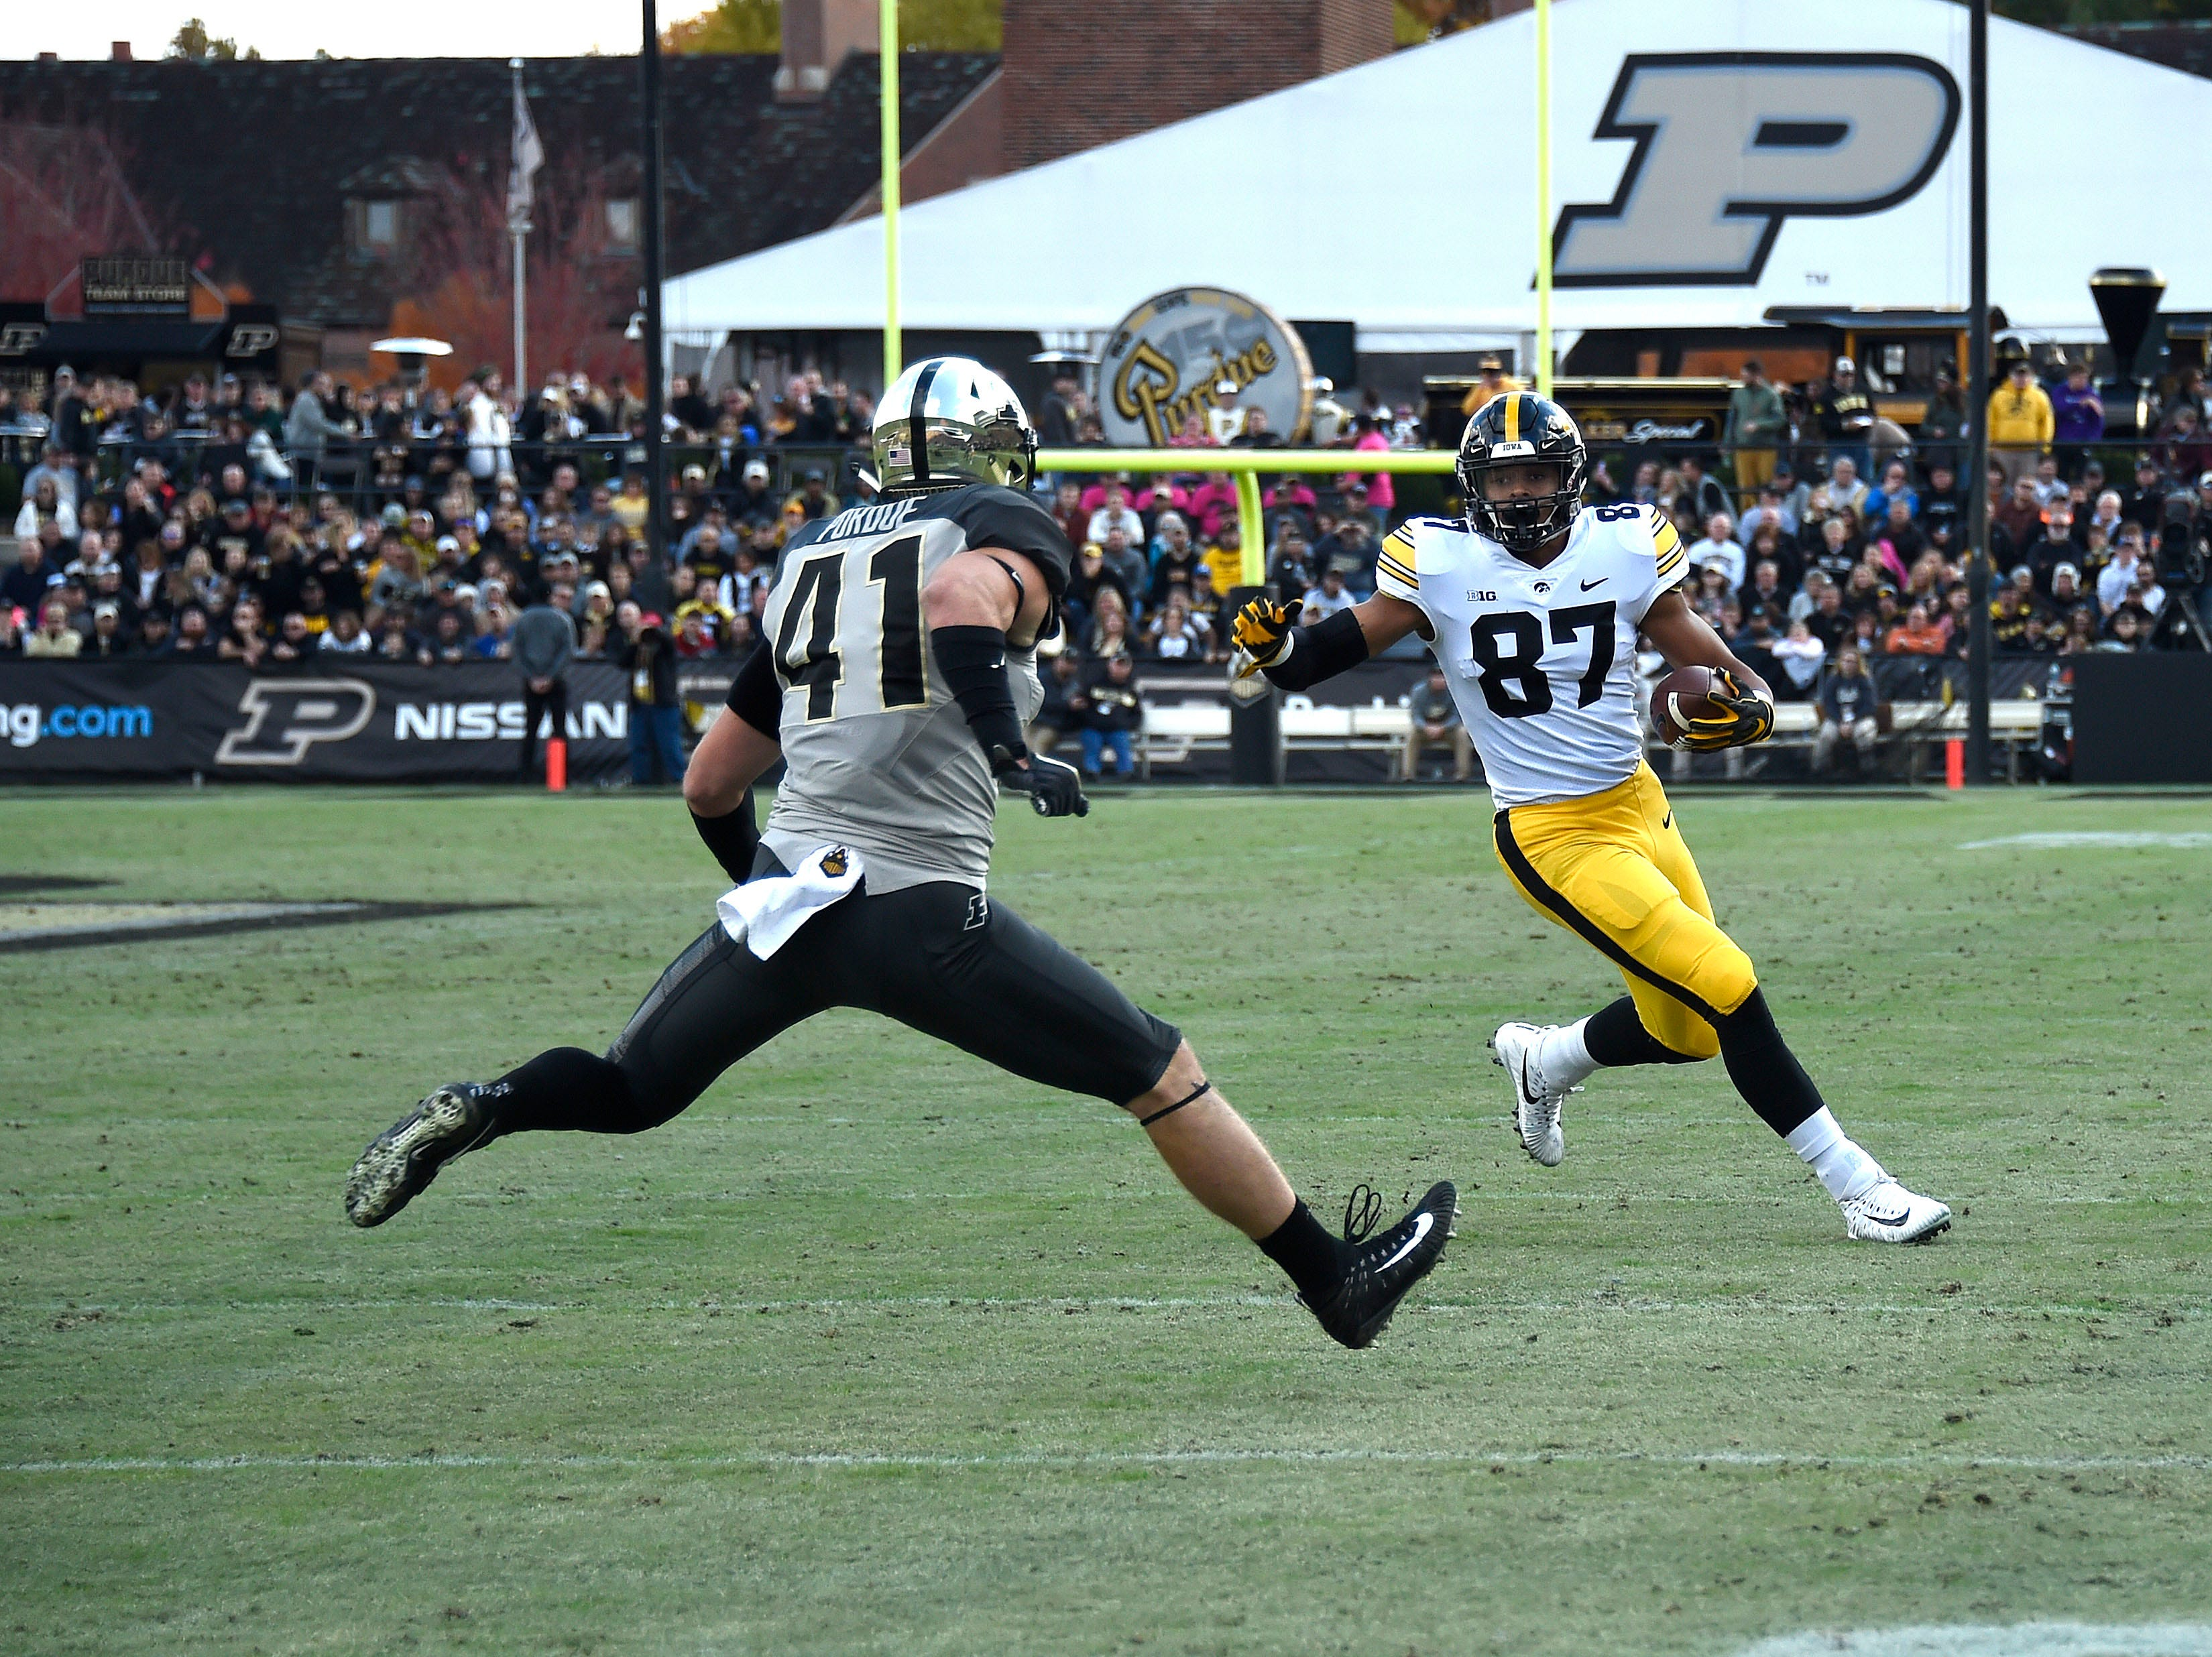 Nov 3, 2018; West Lafayette, IN, USA;  Iowa Hawkeyes tight end Noah Fant (87) runs with the ball as Purdue Boilermakers safety Jacob Thieneman (41) defends in at Ross-Ade Stadium.